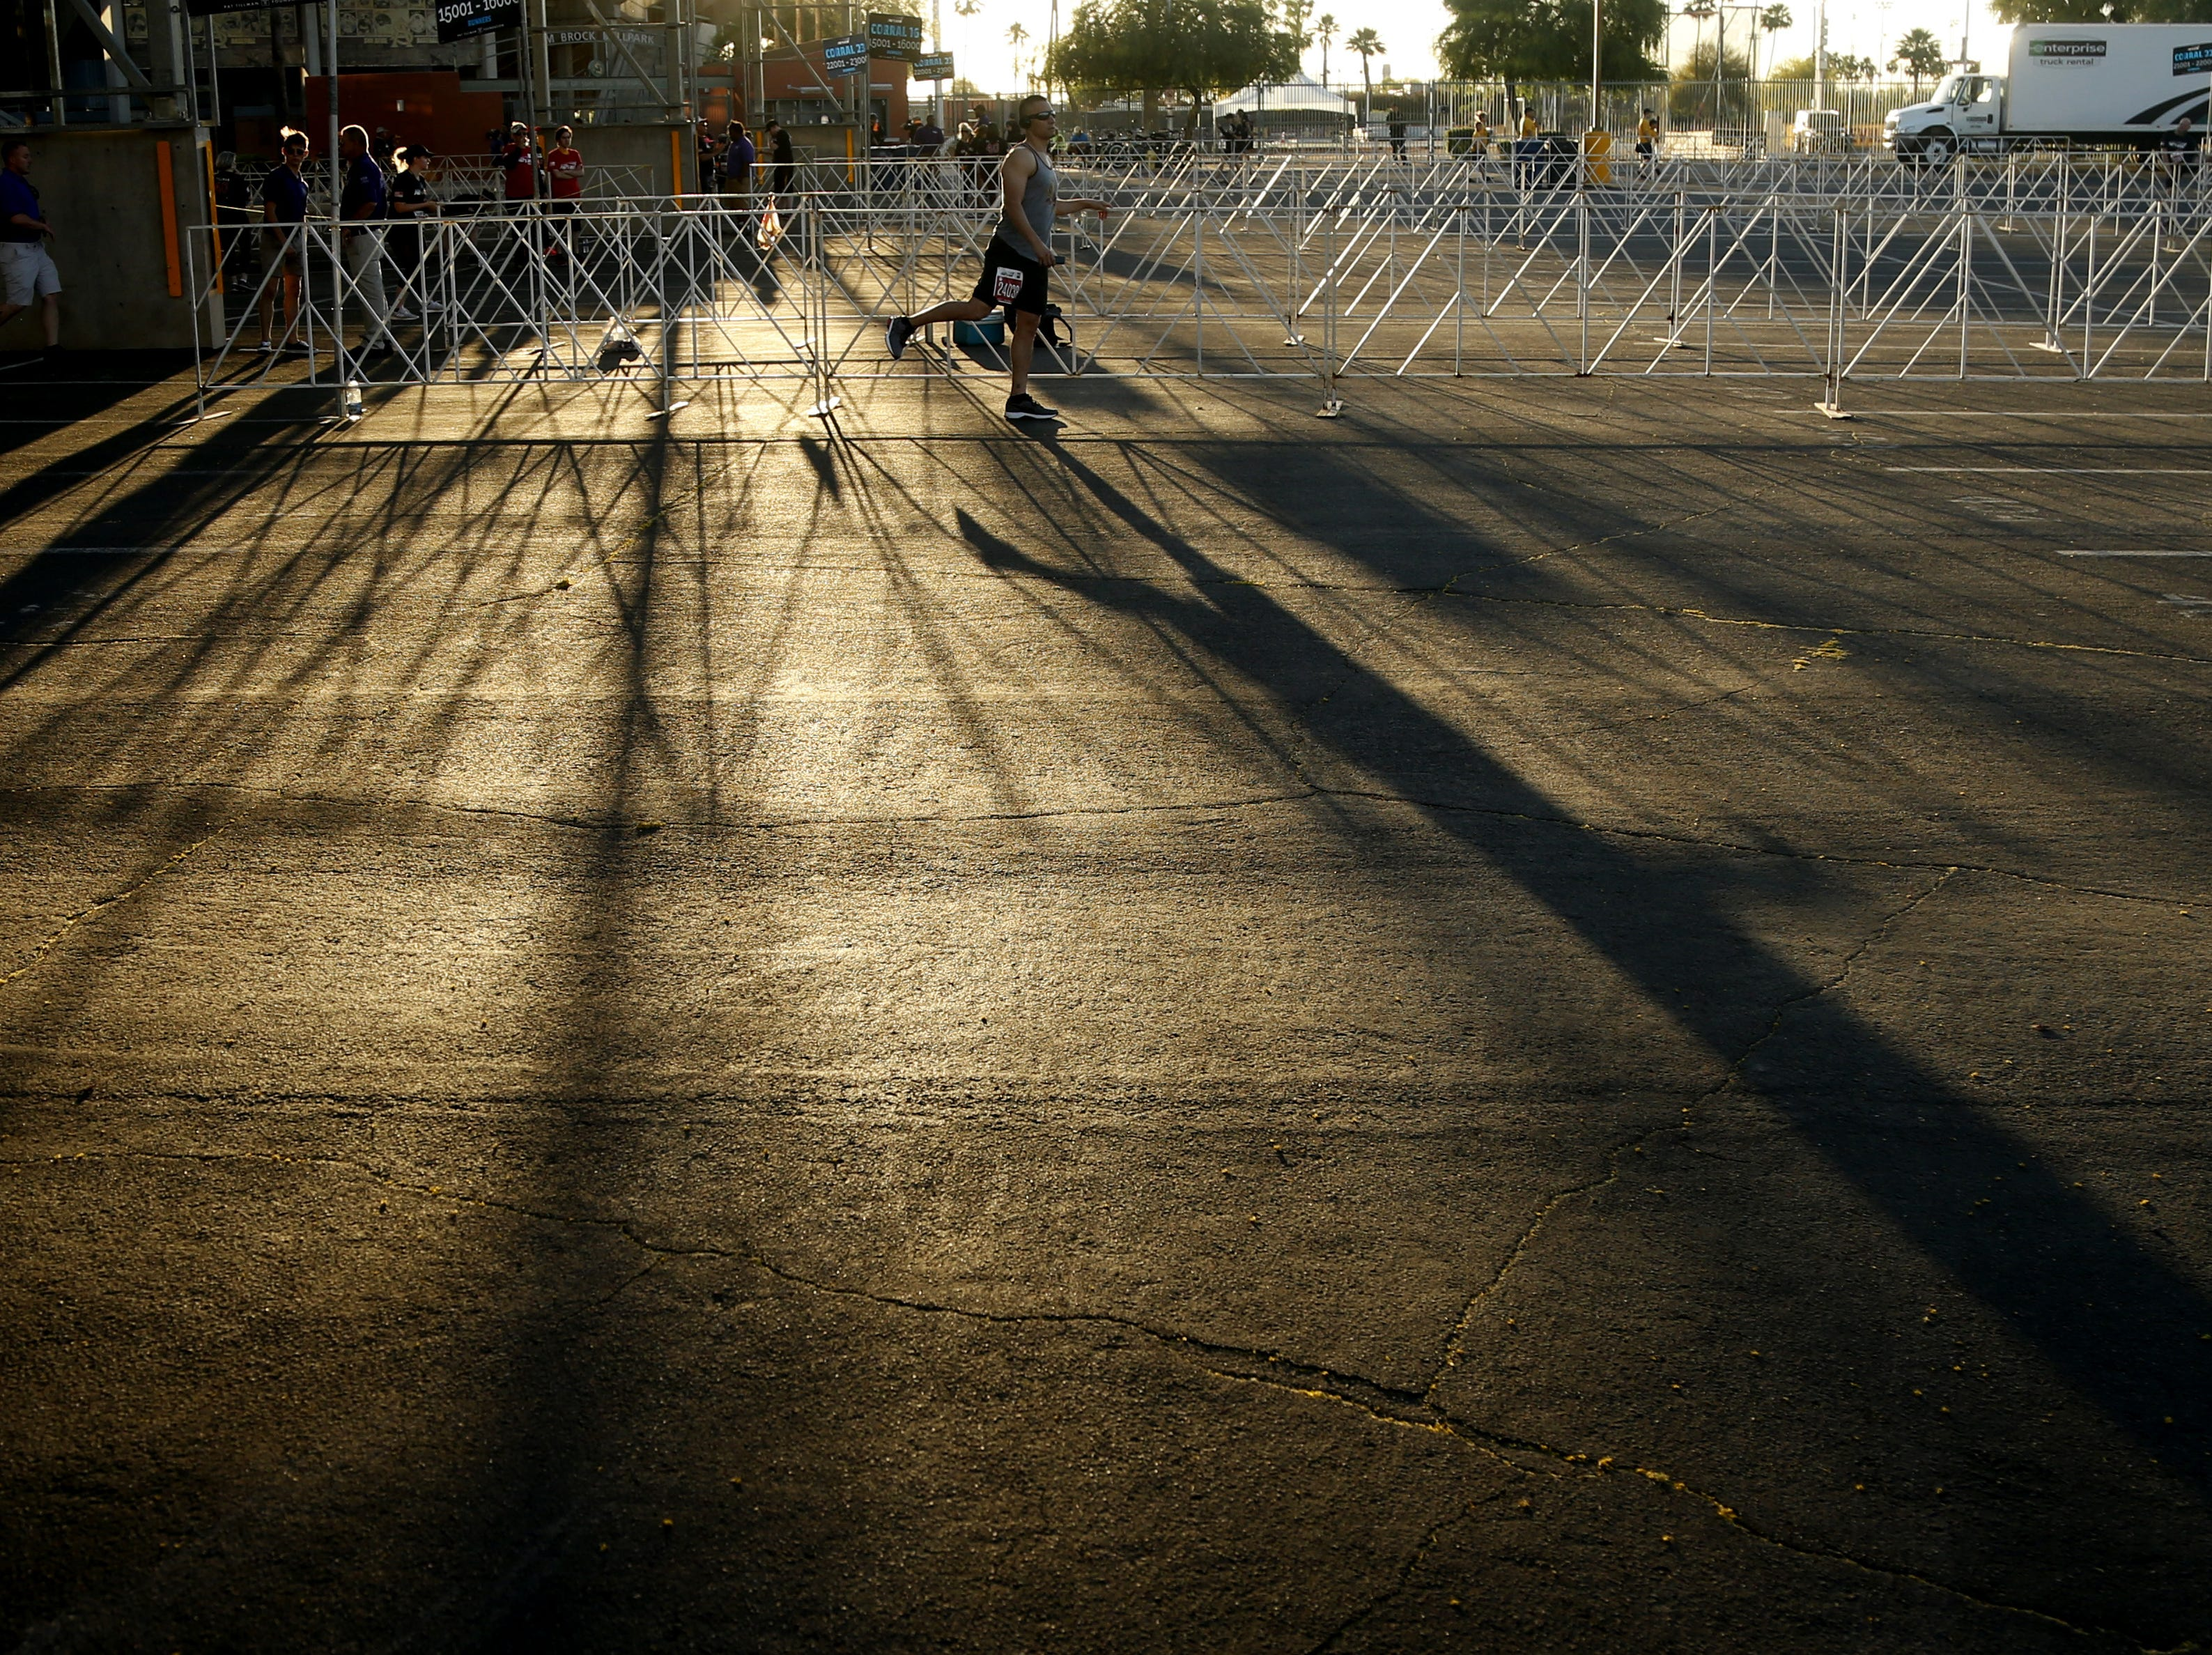 Runners warm up in their corrals as the sun rises before Pat's Run 2019 in Tempe, Ariz. on April 27, 2019.